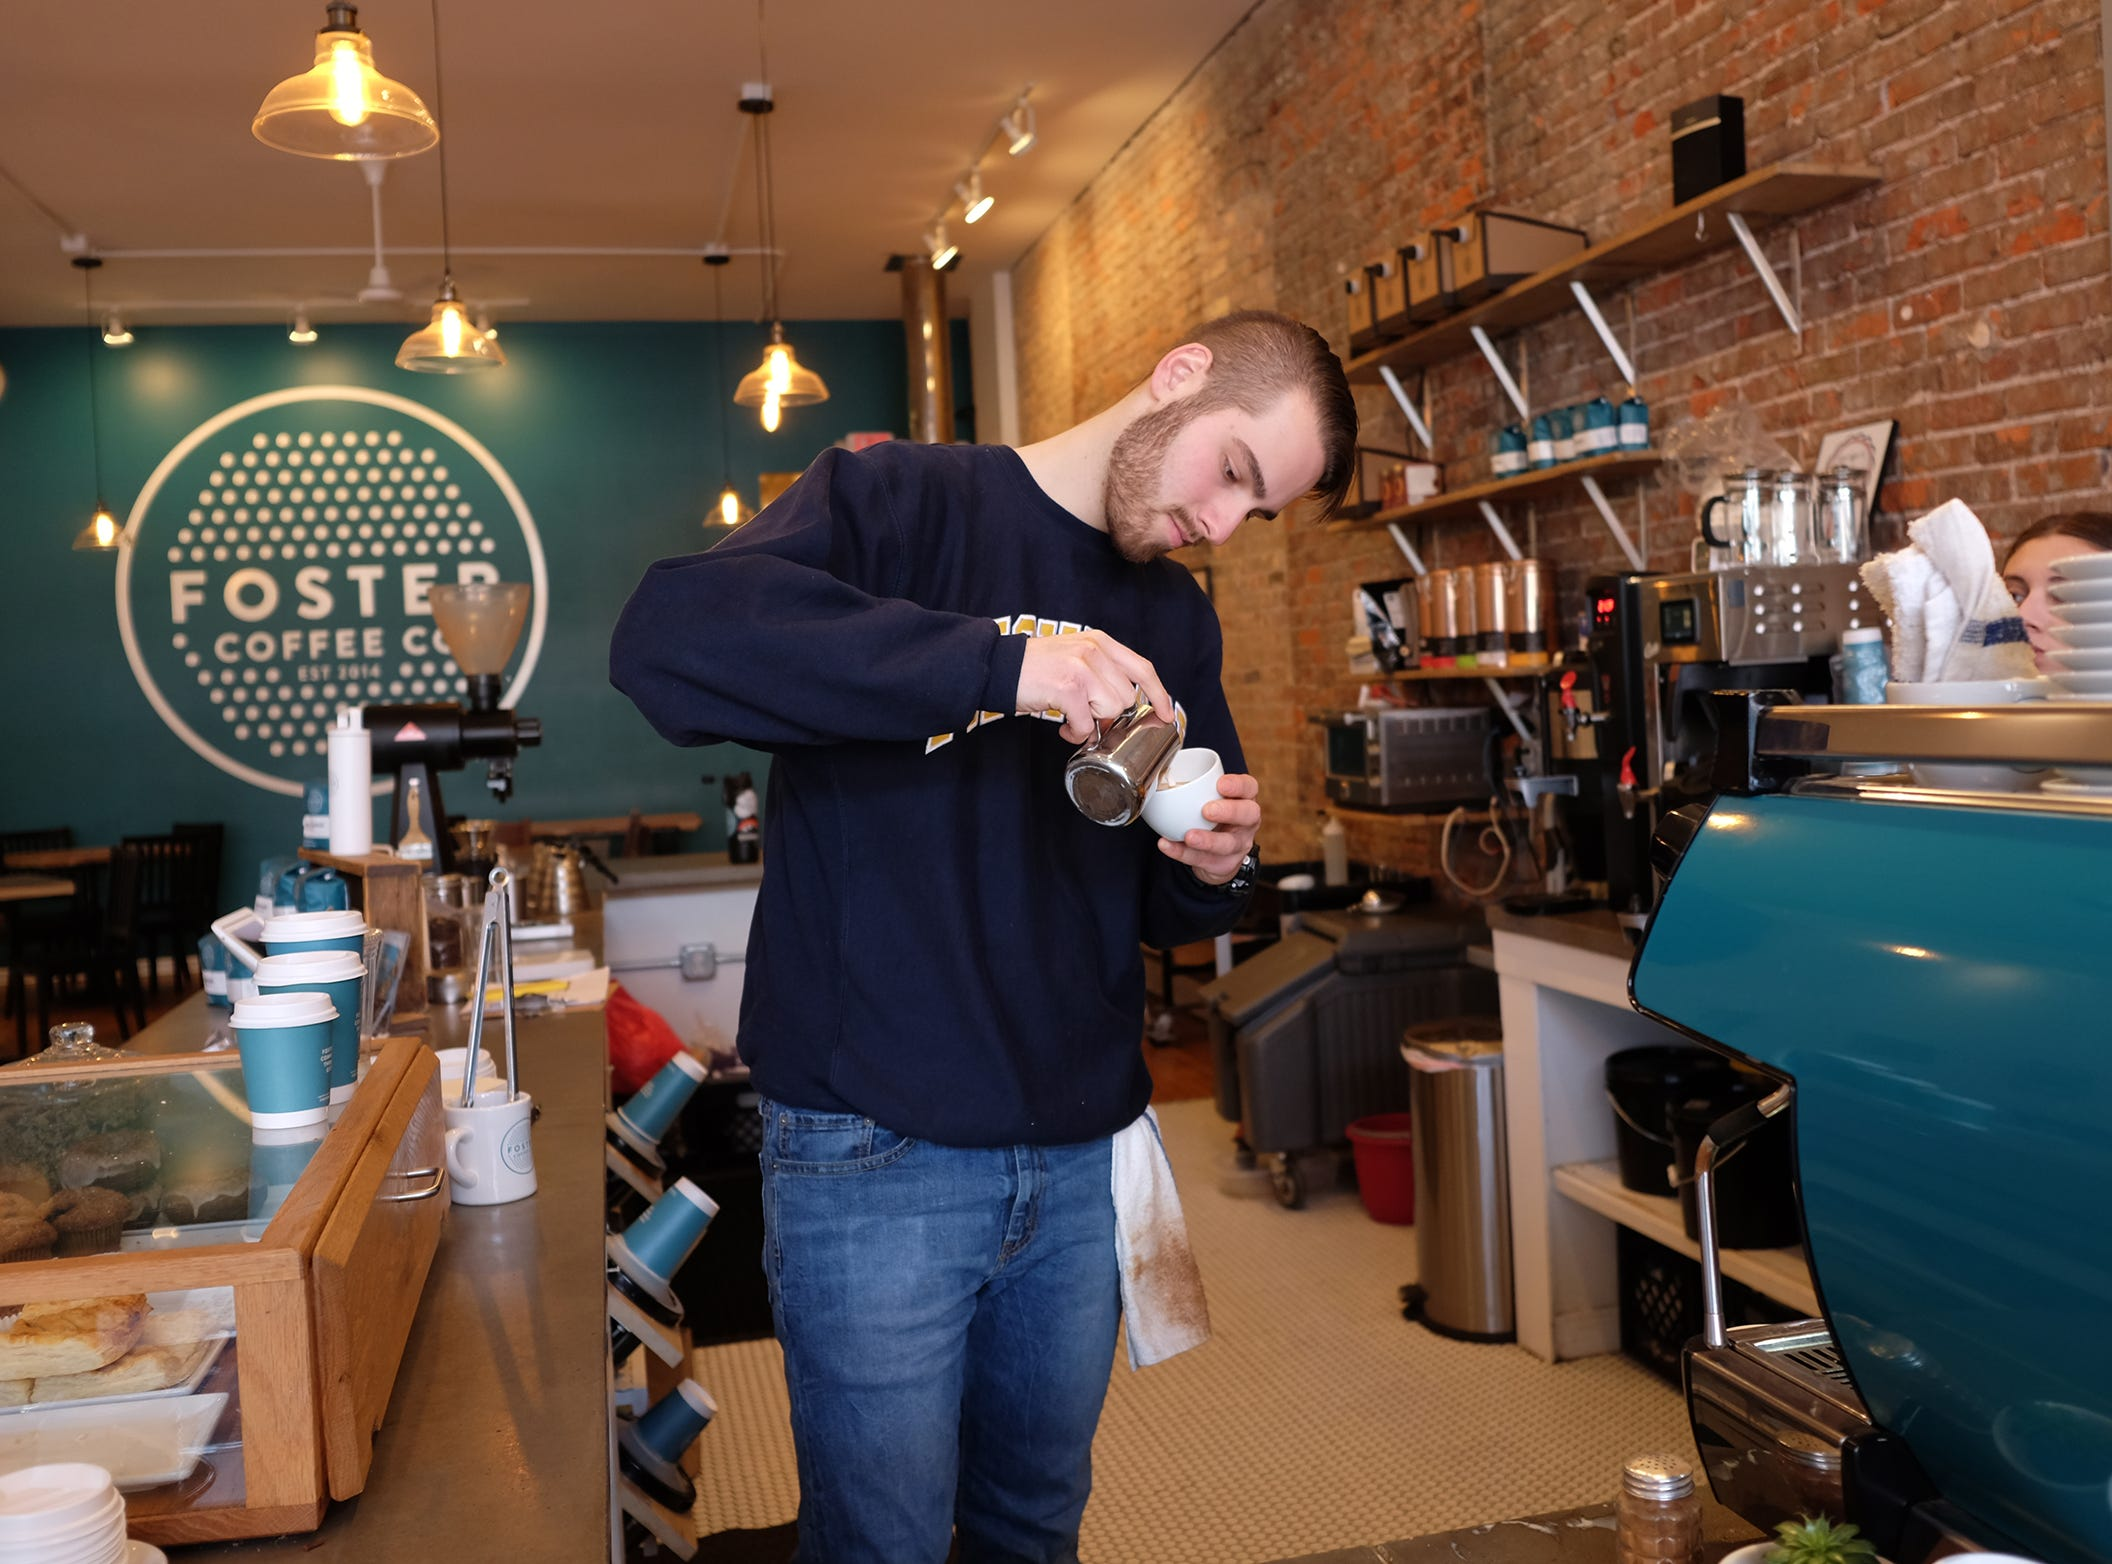 Barista Caleb Schlaack at Foster Coffee Company in Owosso carefully pours a cup.